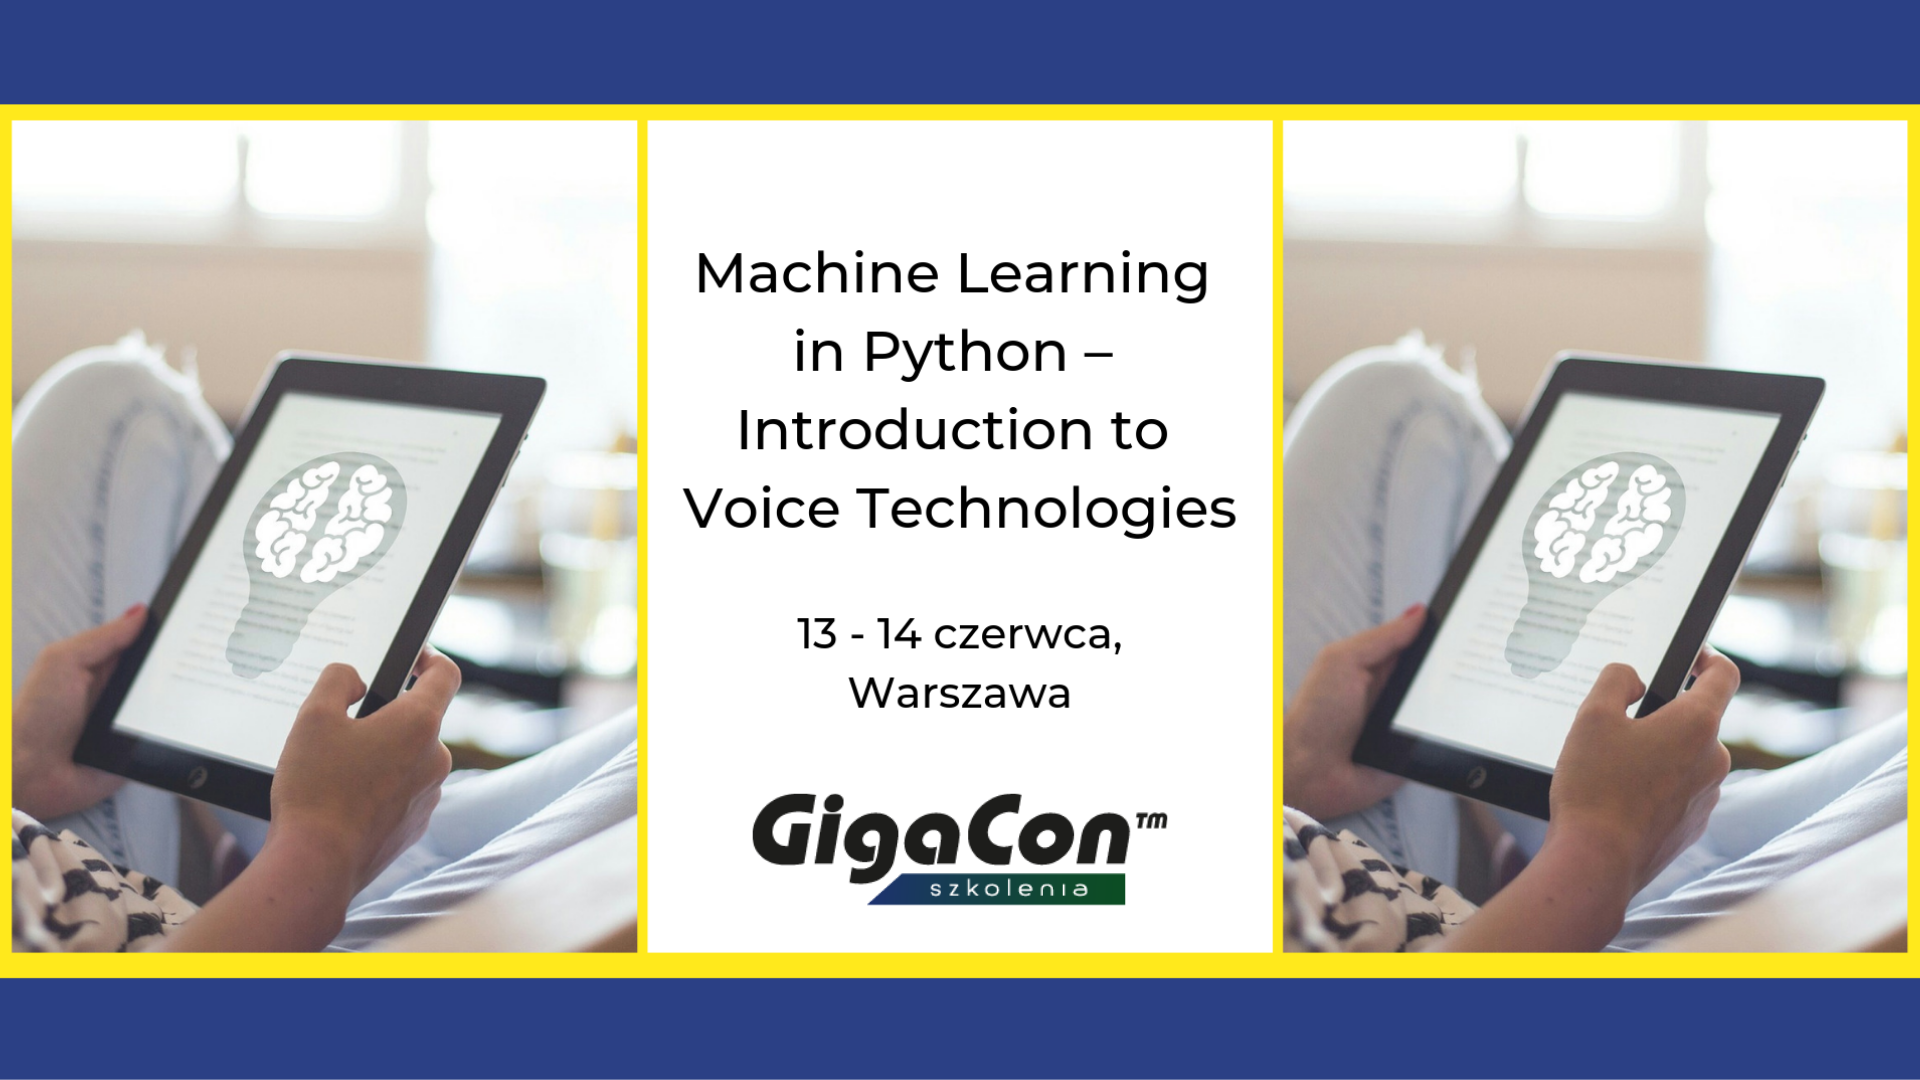 gigacon-machine-learning-in-python-introduction-to-voice-technologies-czerwiec-2019